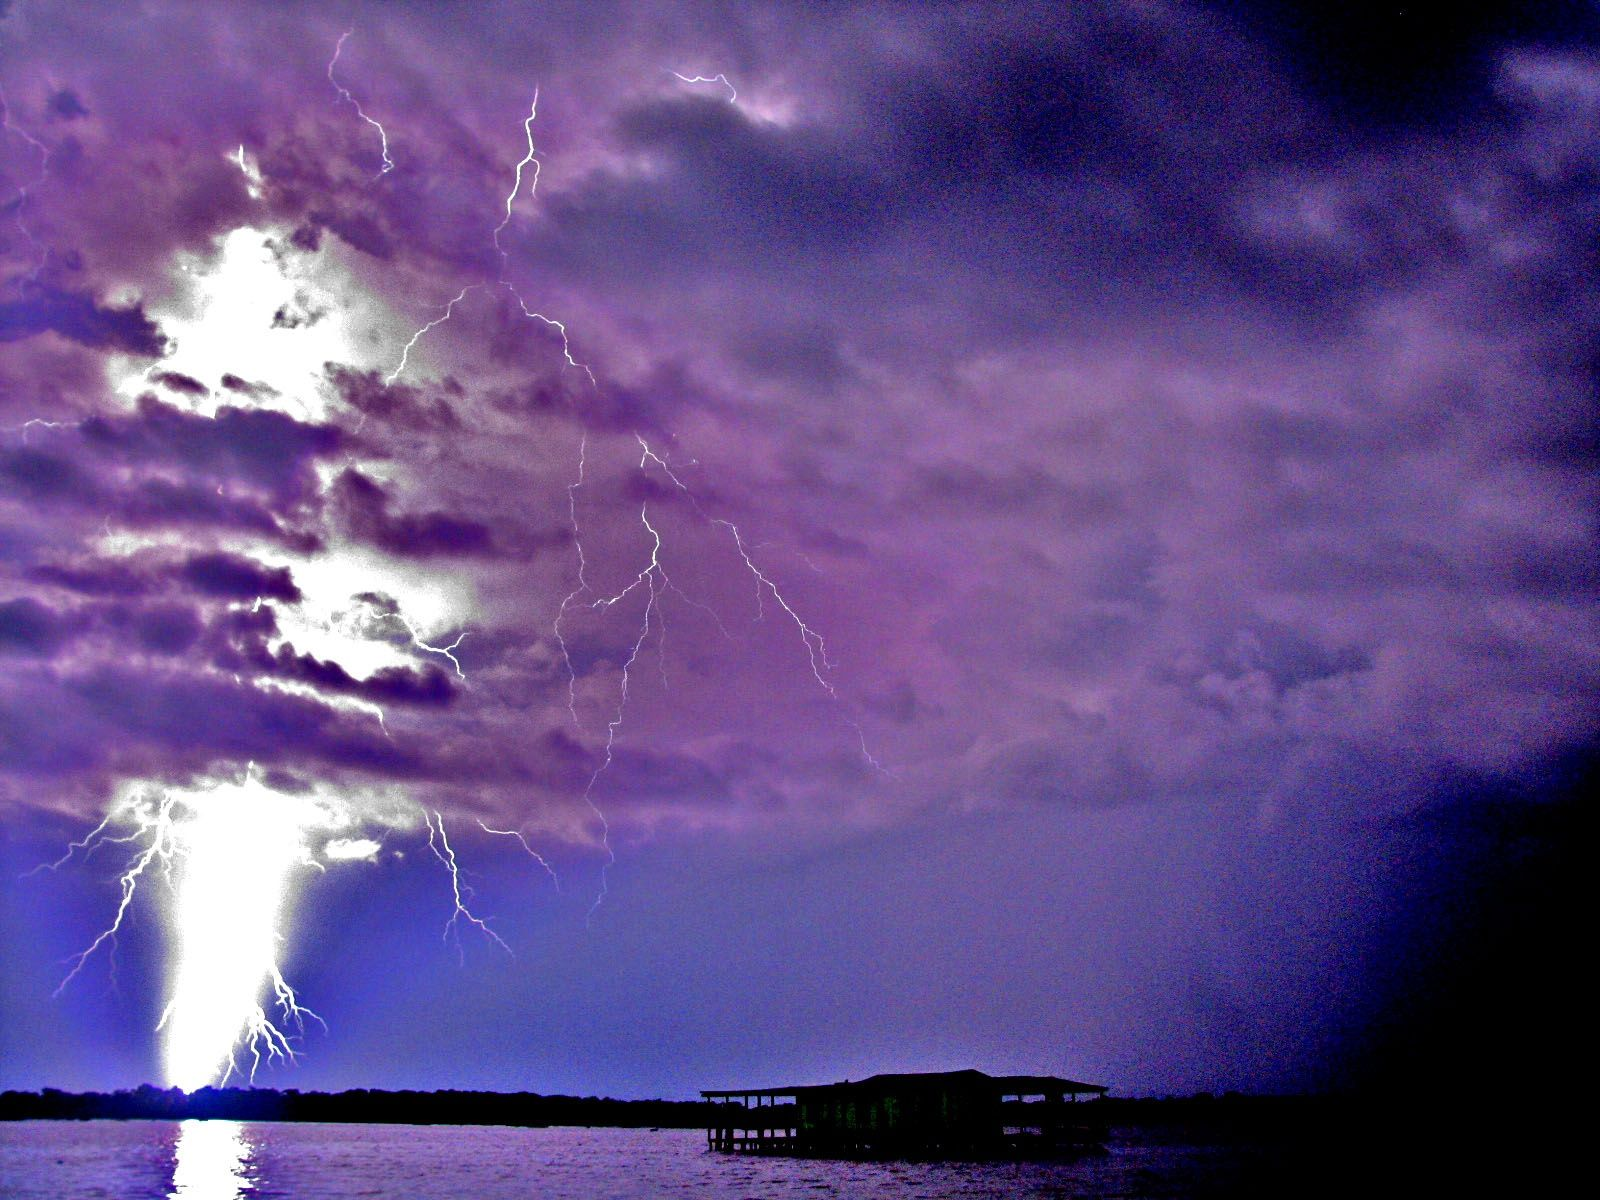 Catatumbo Lightning2 By Alejandra Aponte This Is An